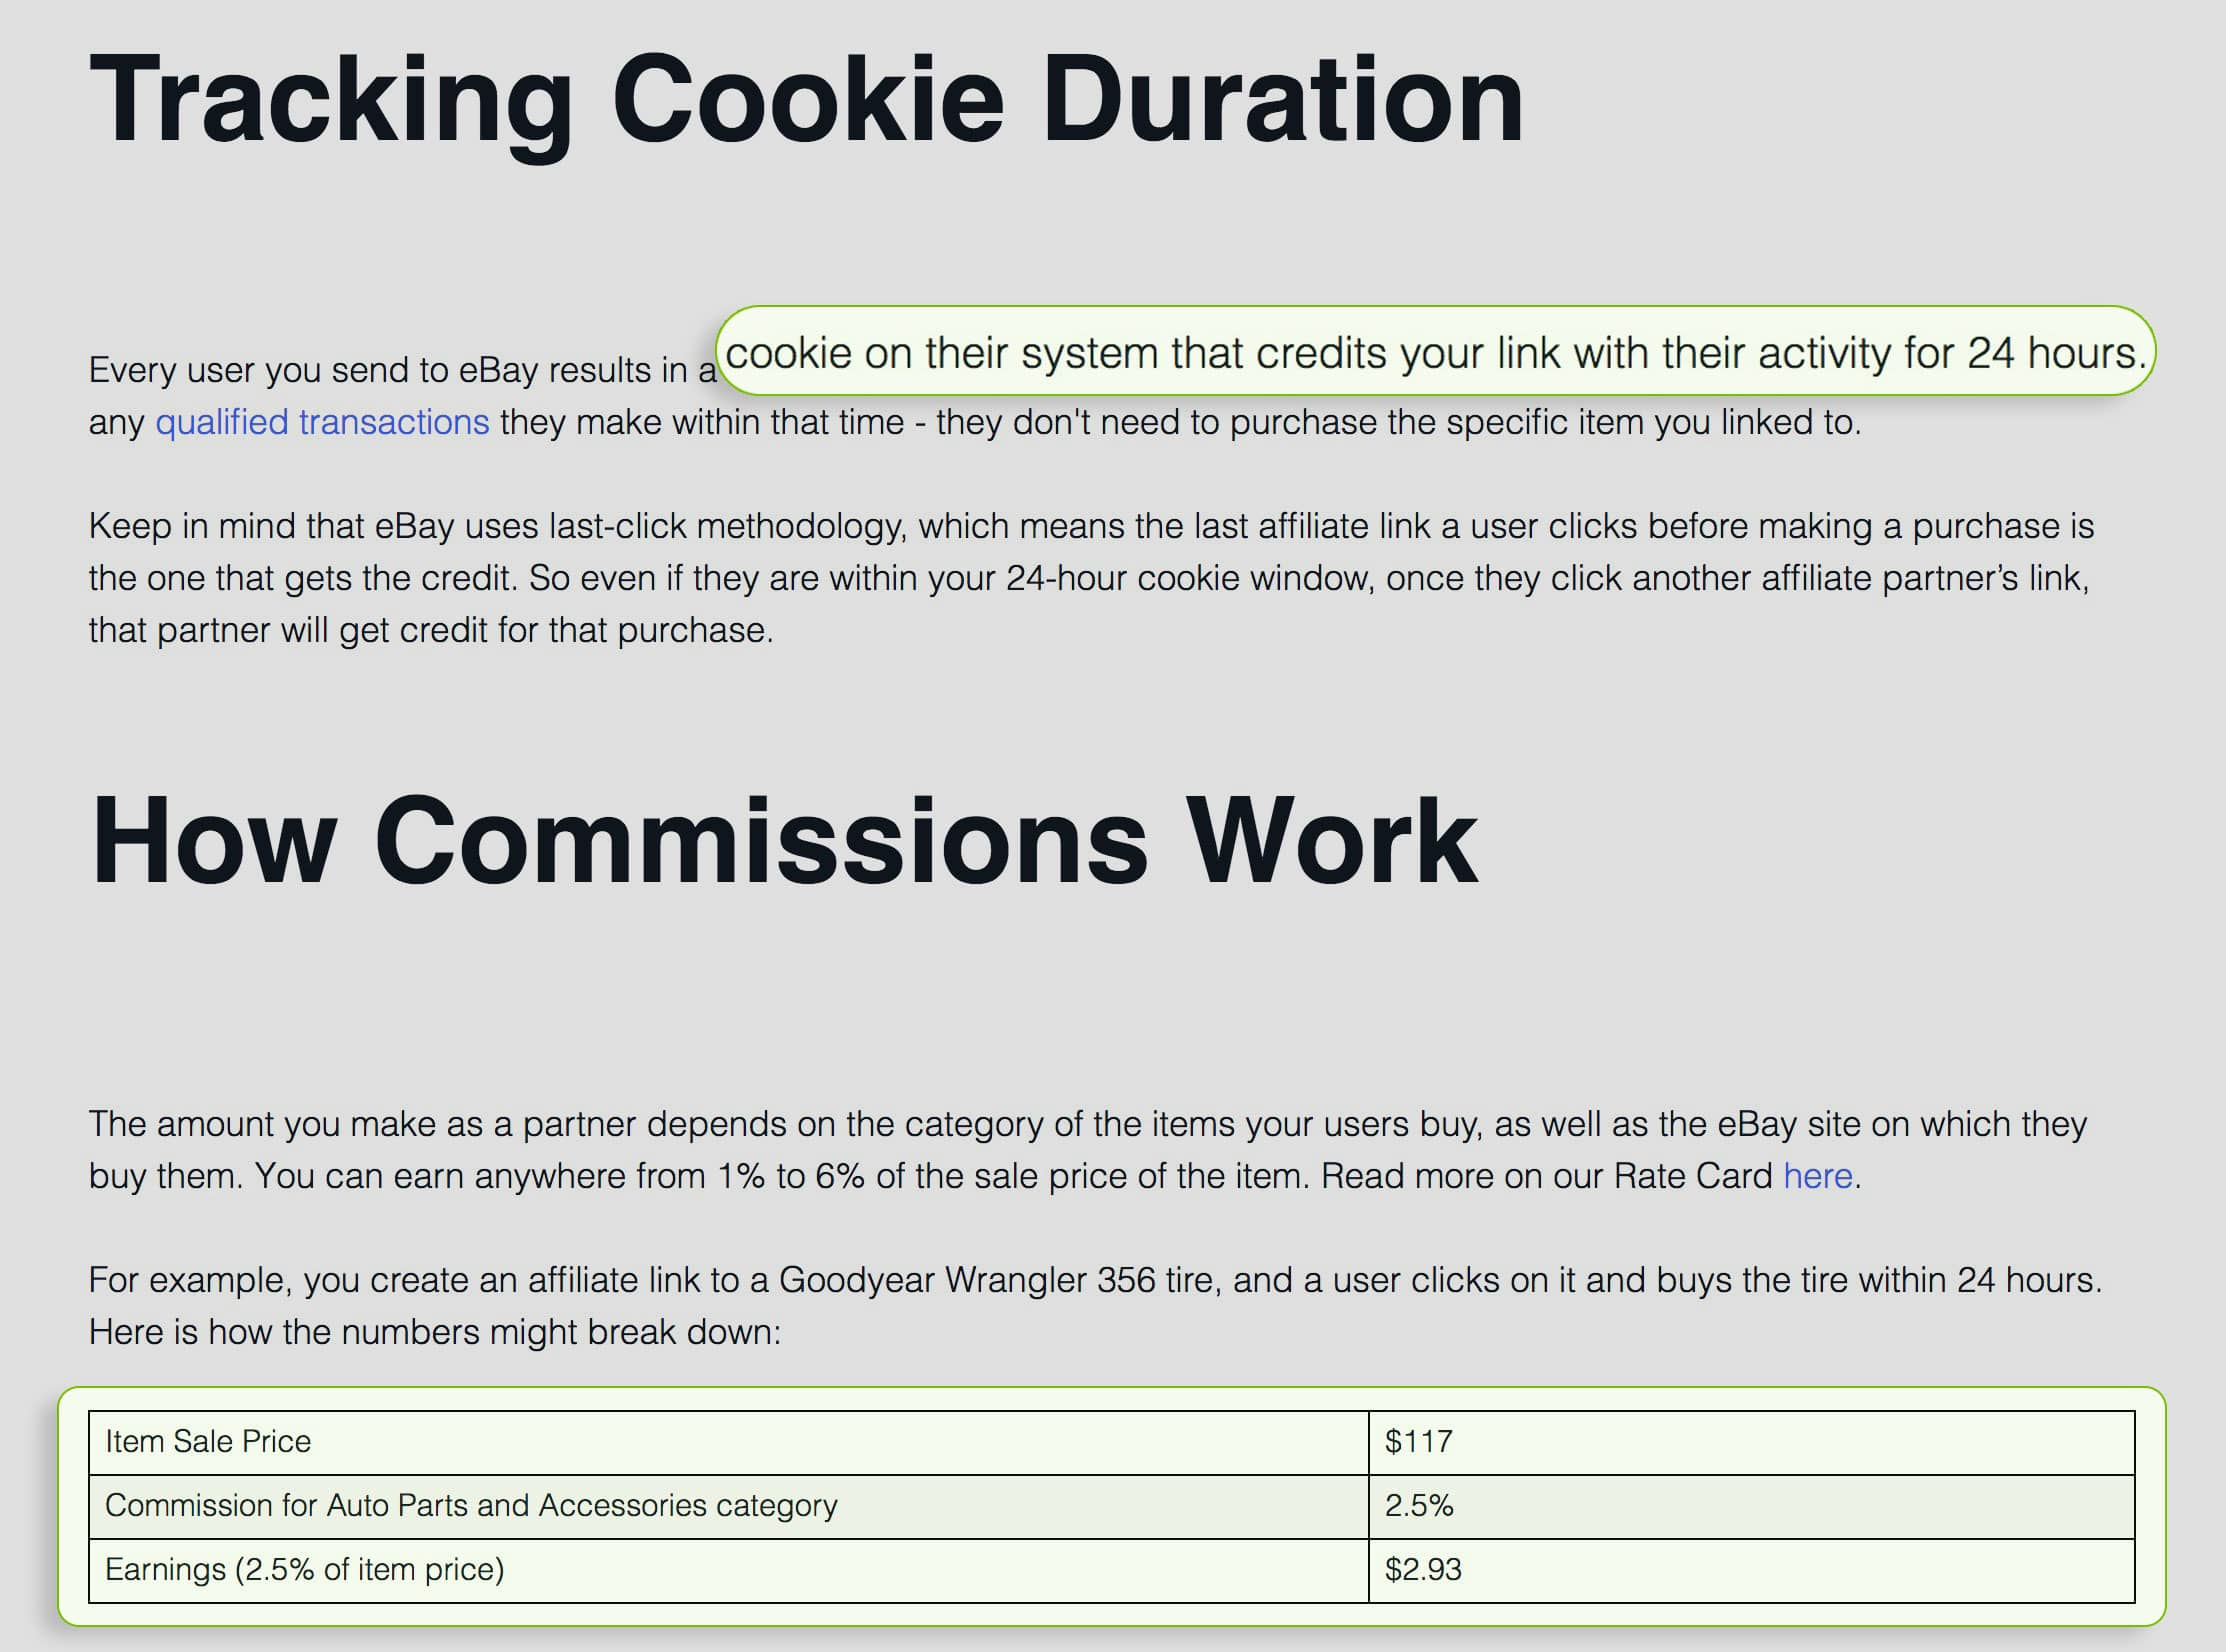 ebay cookie and commission policy